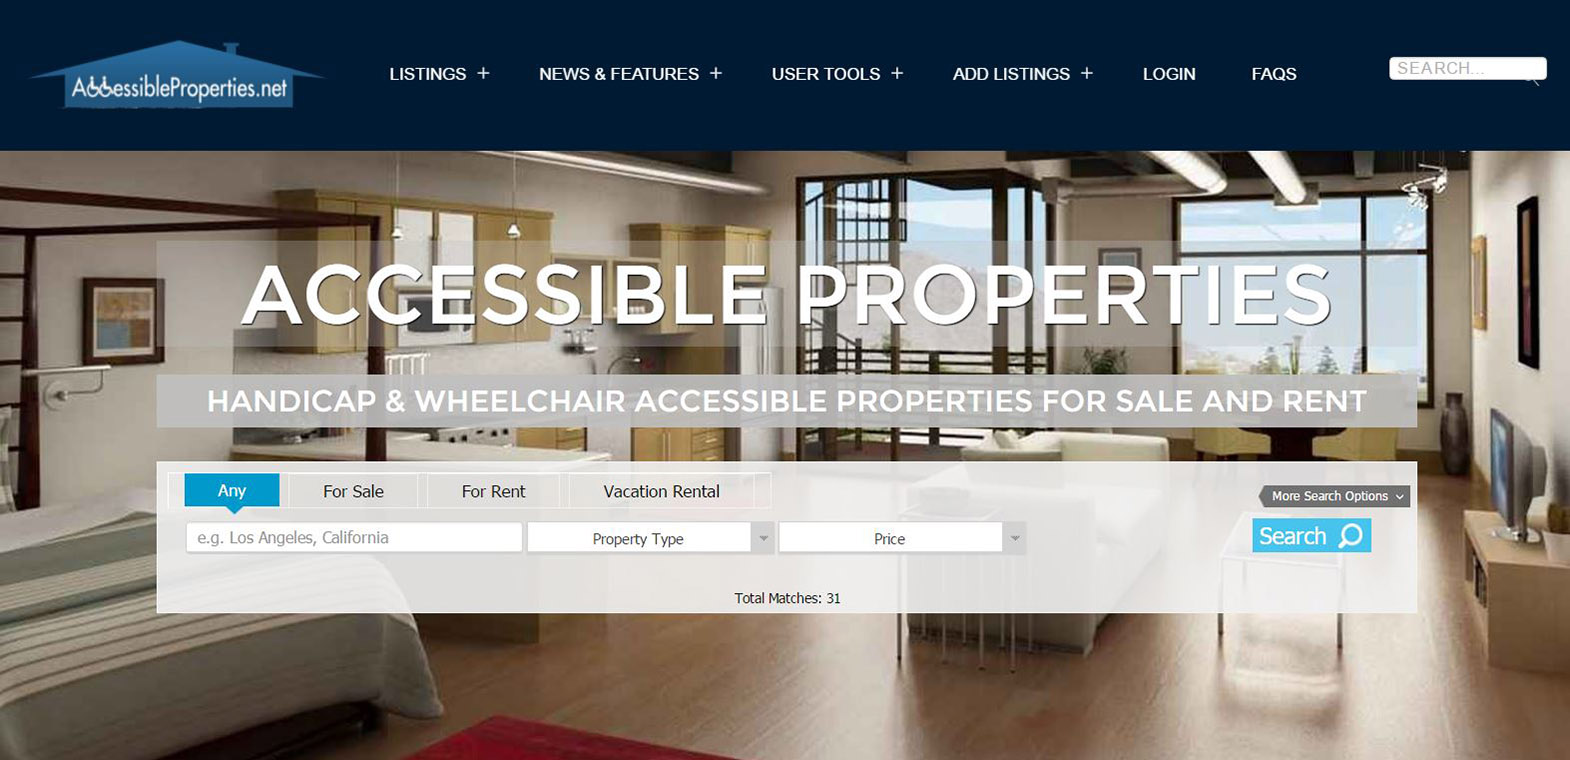 AccessibleProperties